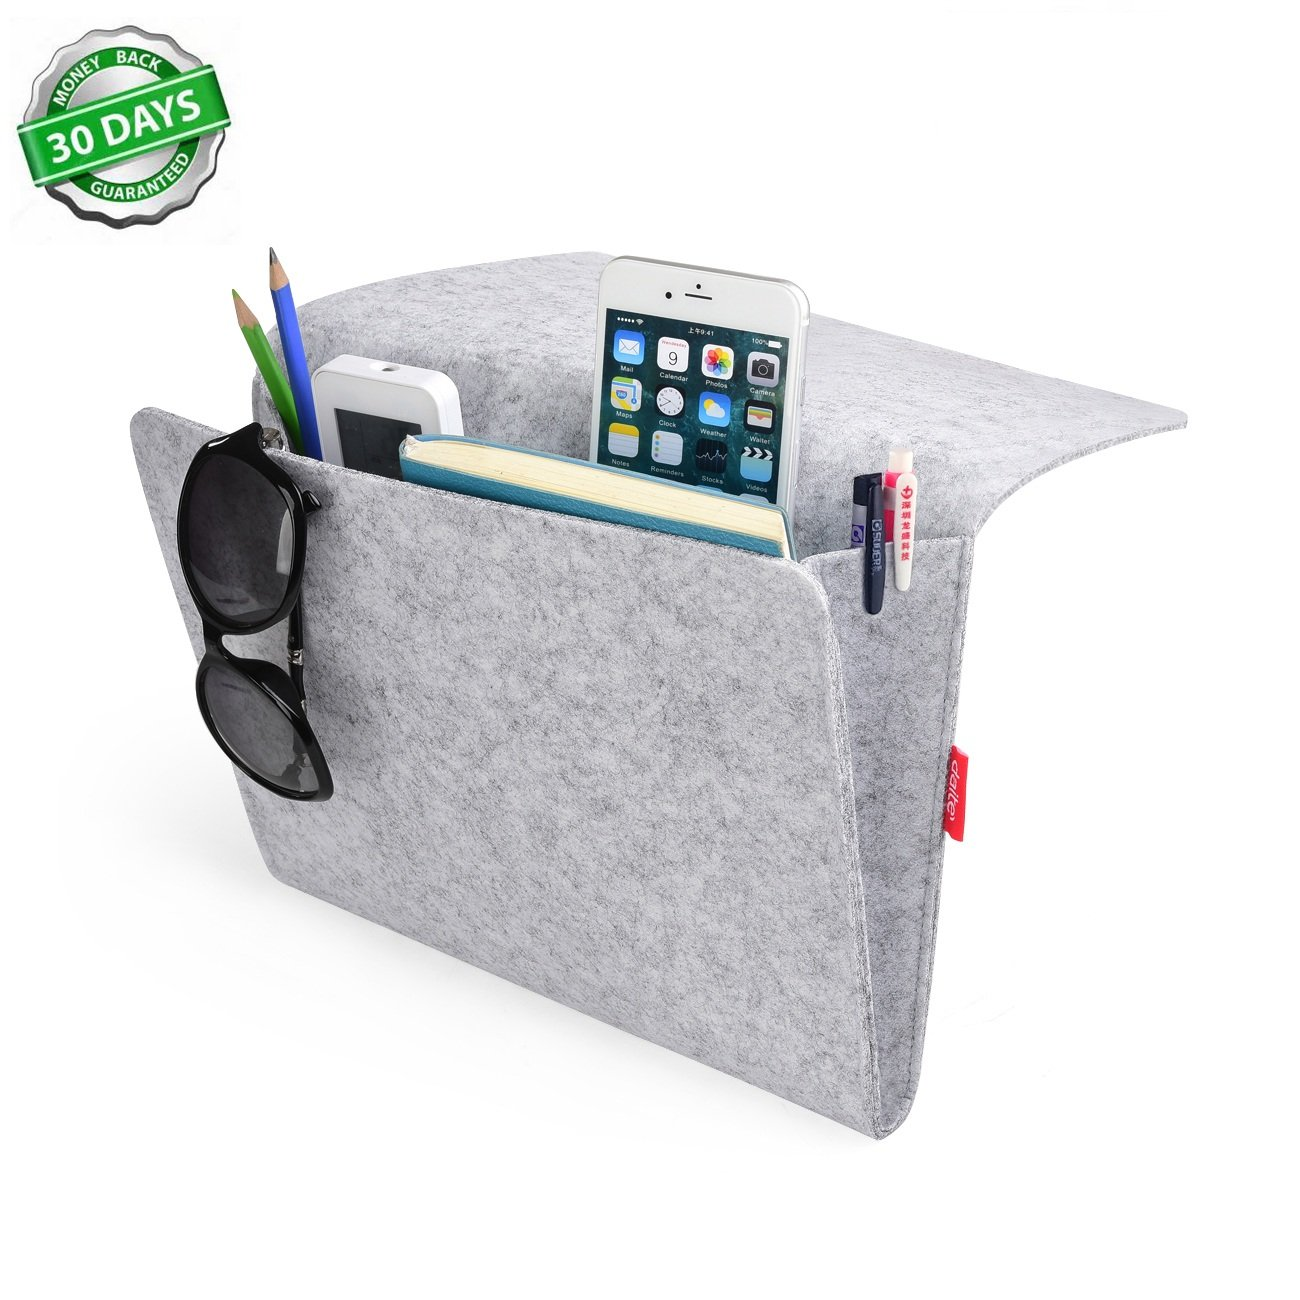 Grey bedside pocket caddy storage organizer bed organizing for Sofa organizer